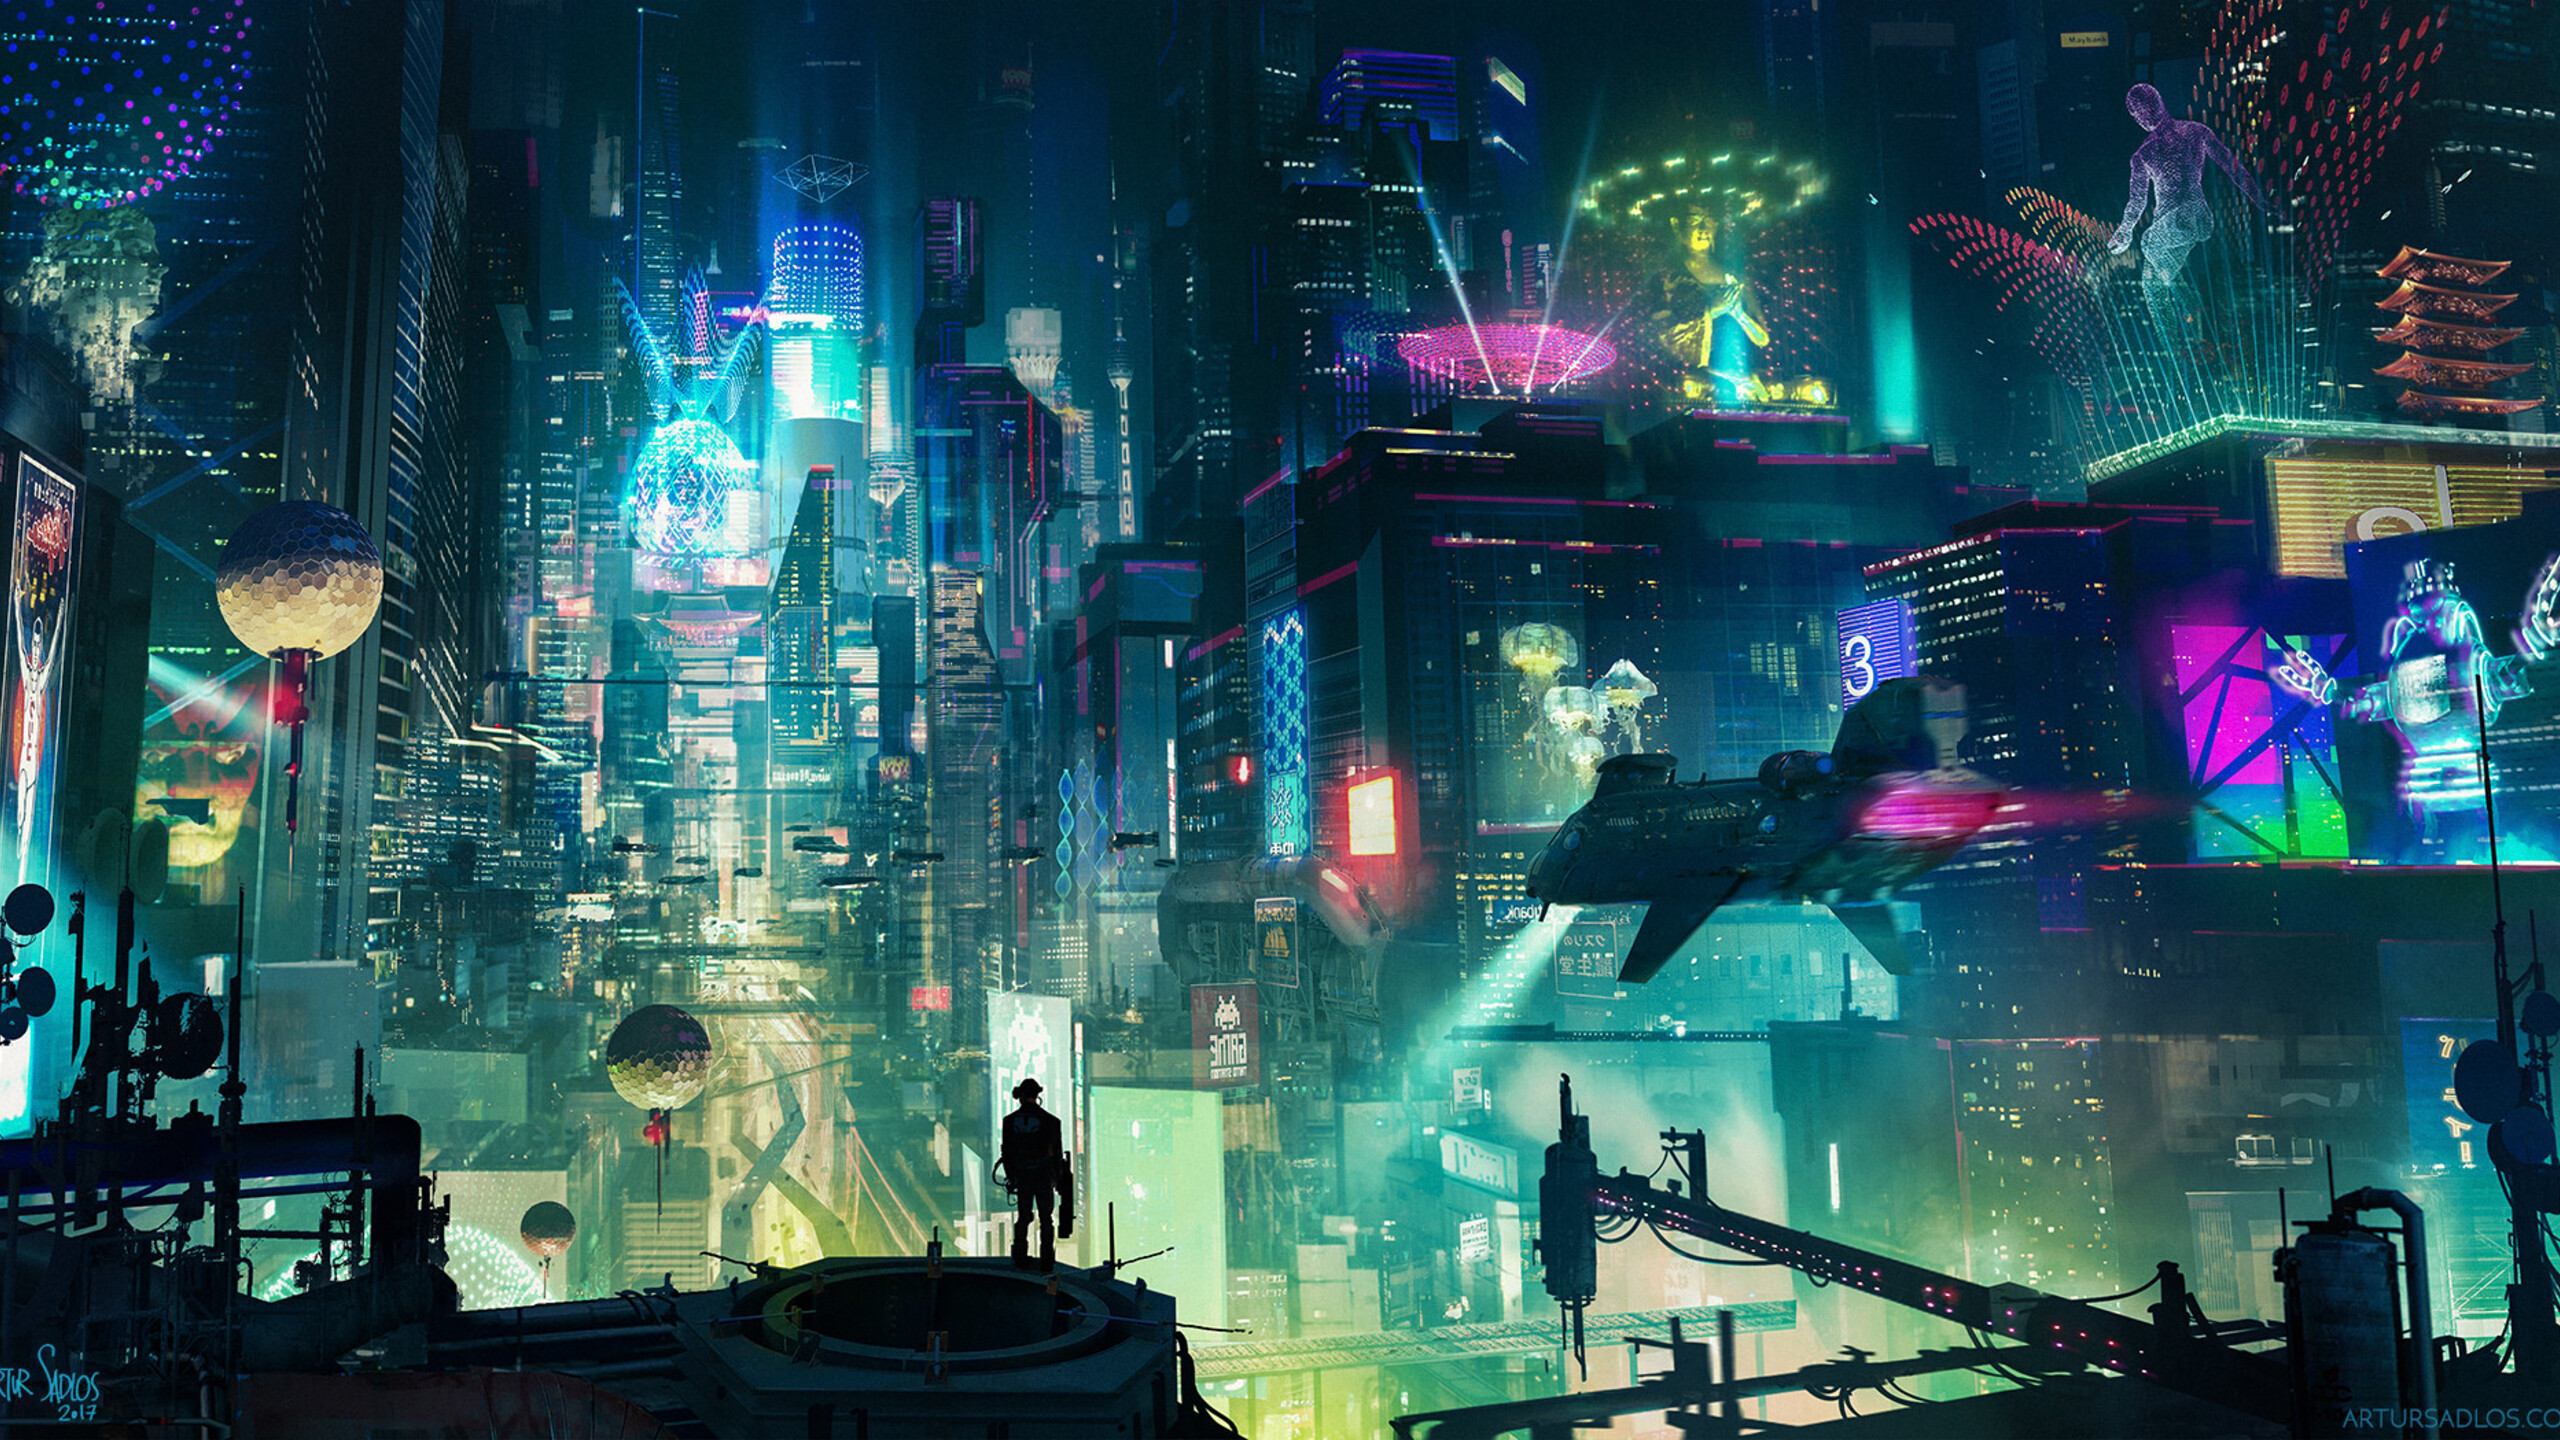 2560x1440 cyberpunk city 1440p resolution hd 4k wallpapers